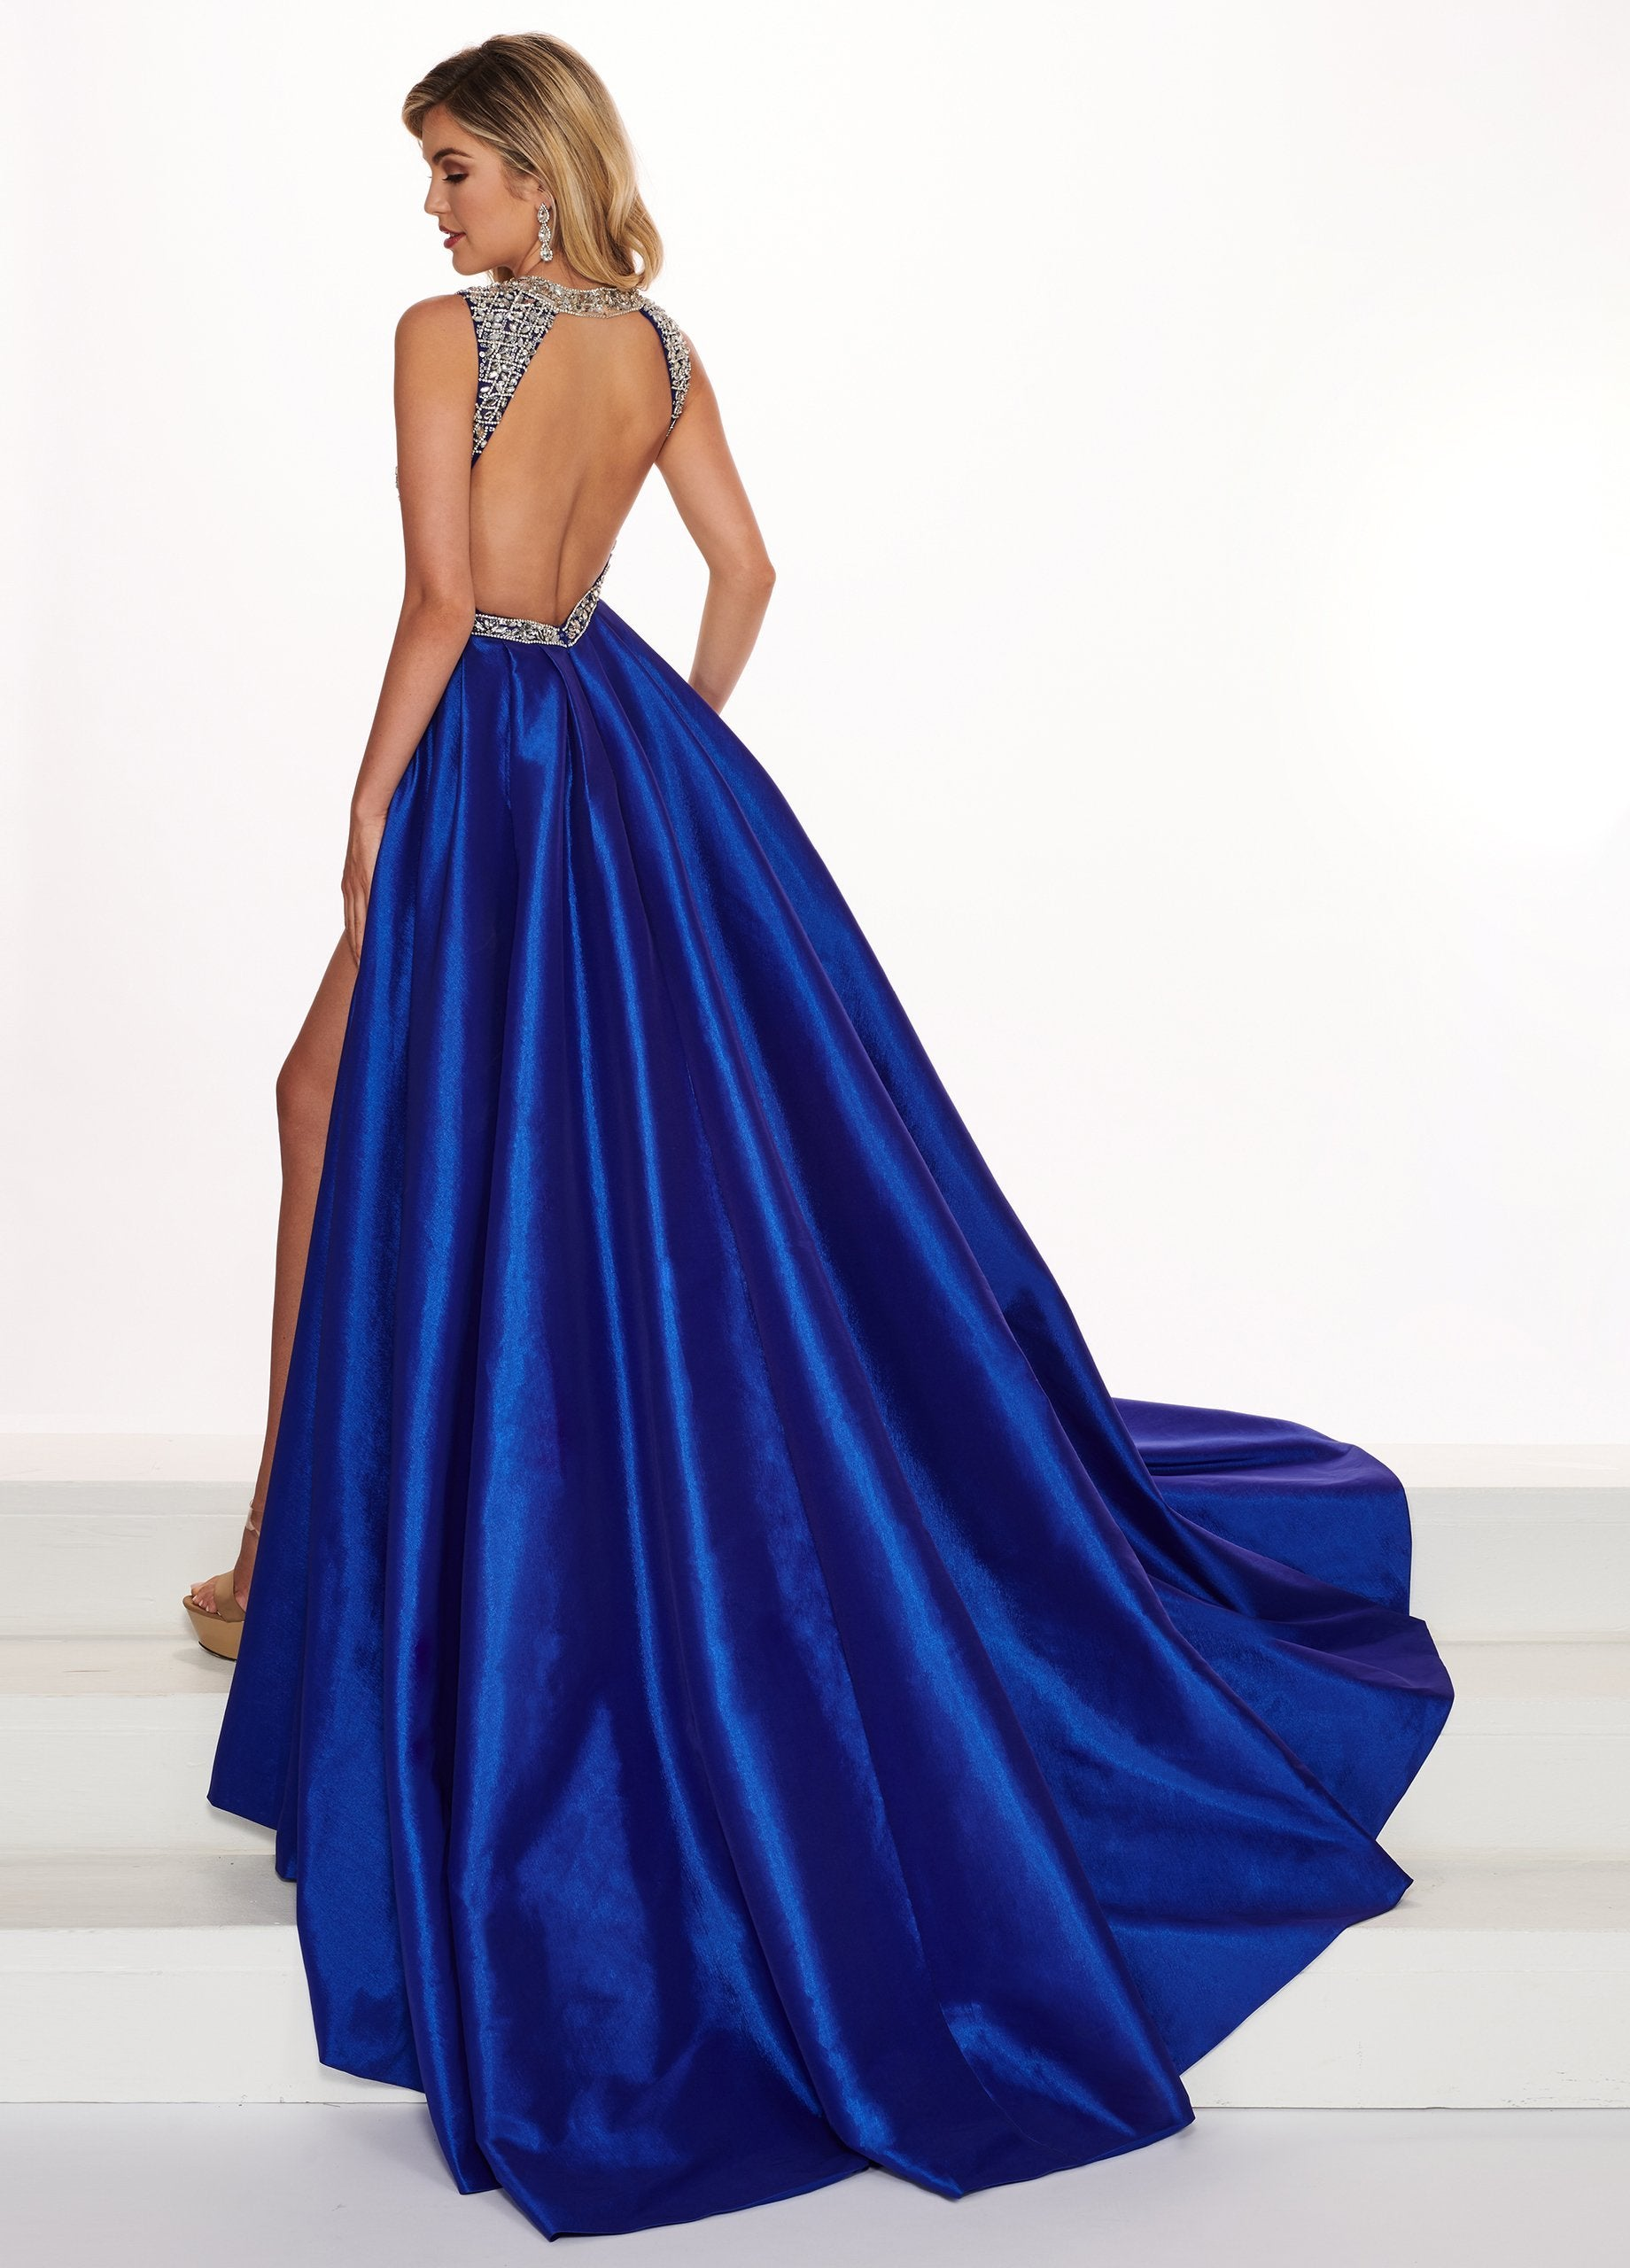 Rachel Allan Prima Donna - 5067 Beaded Stretch Taffeta Ballgown In Blue